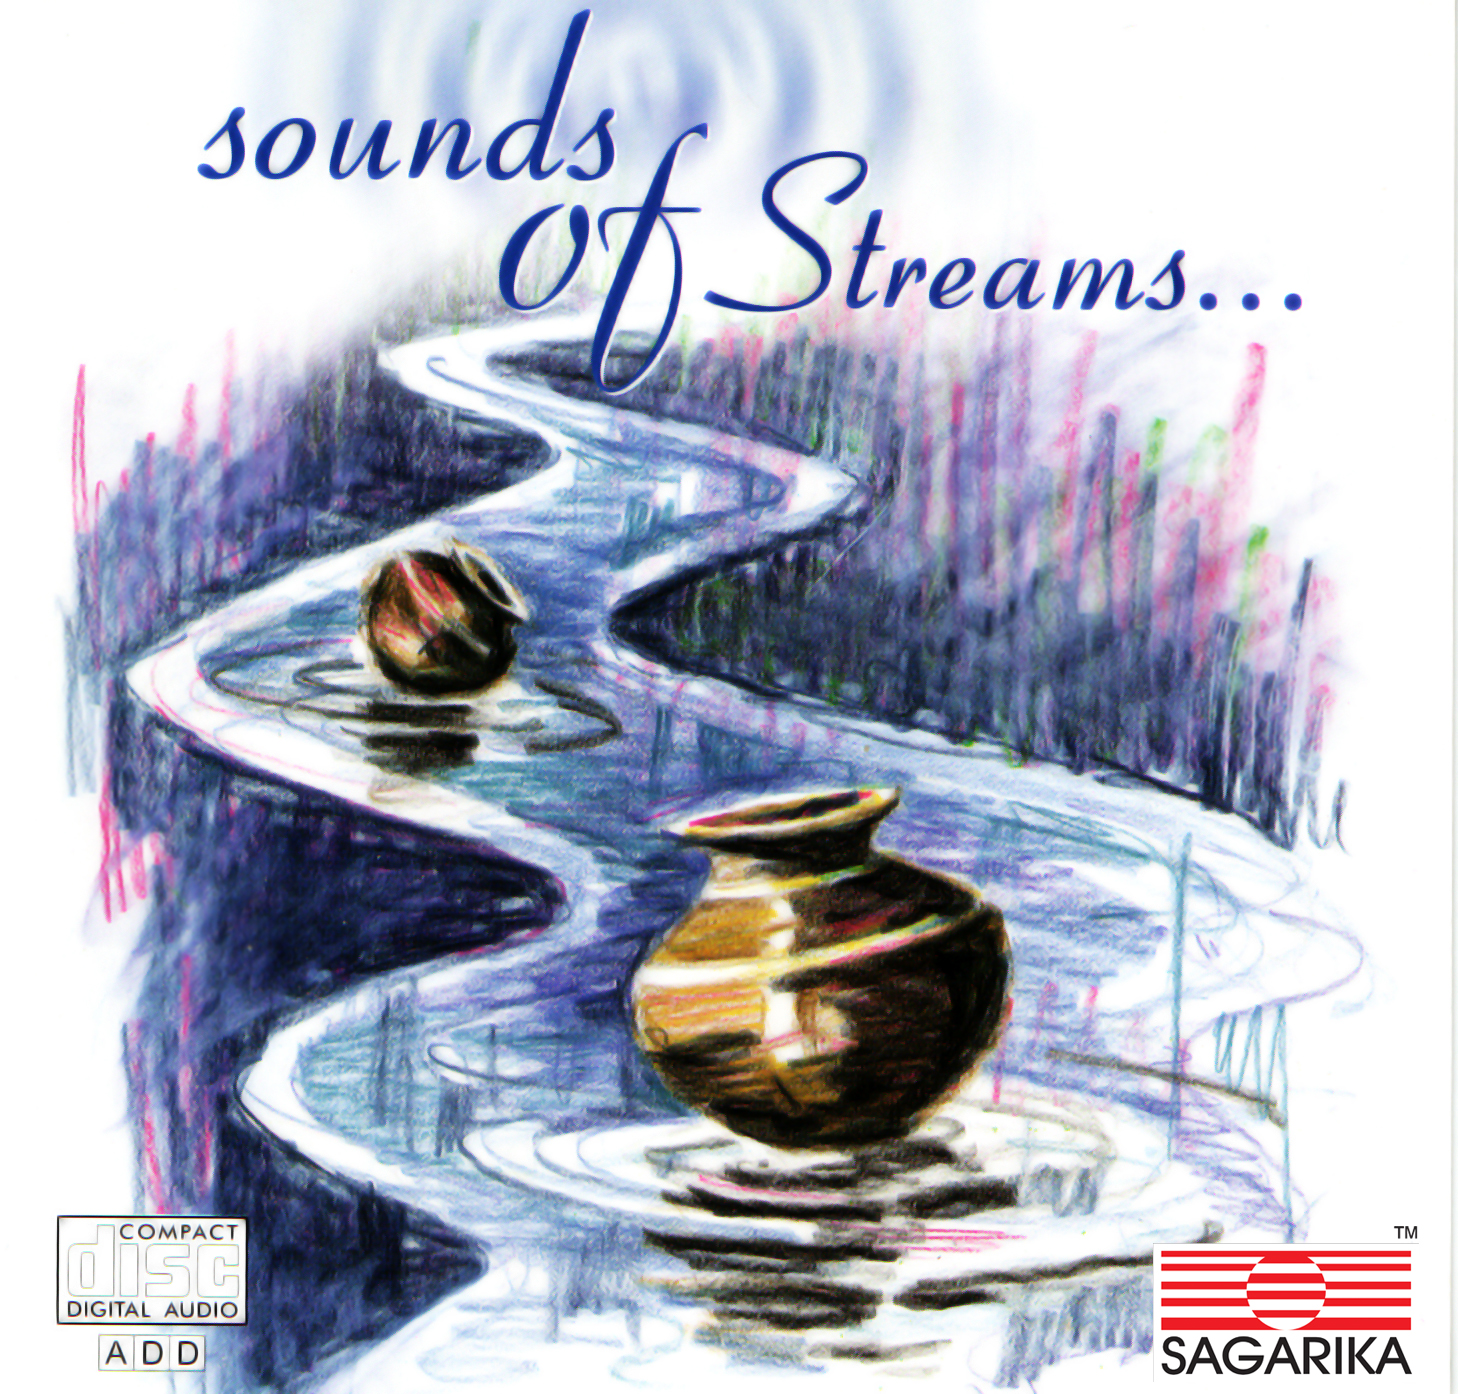 Sounds of Streams